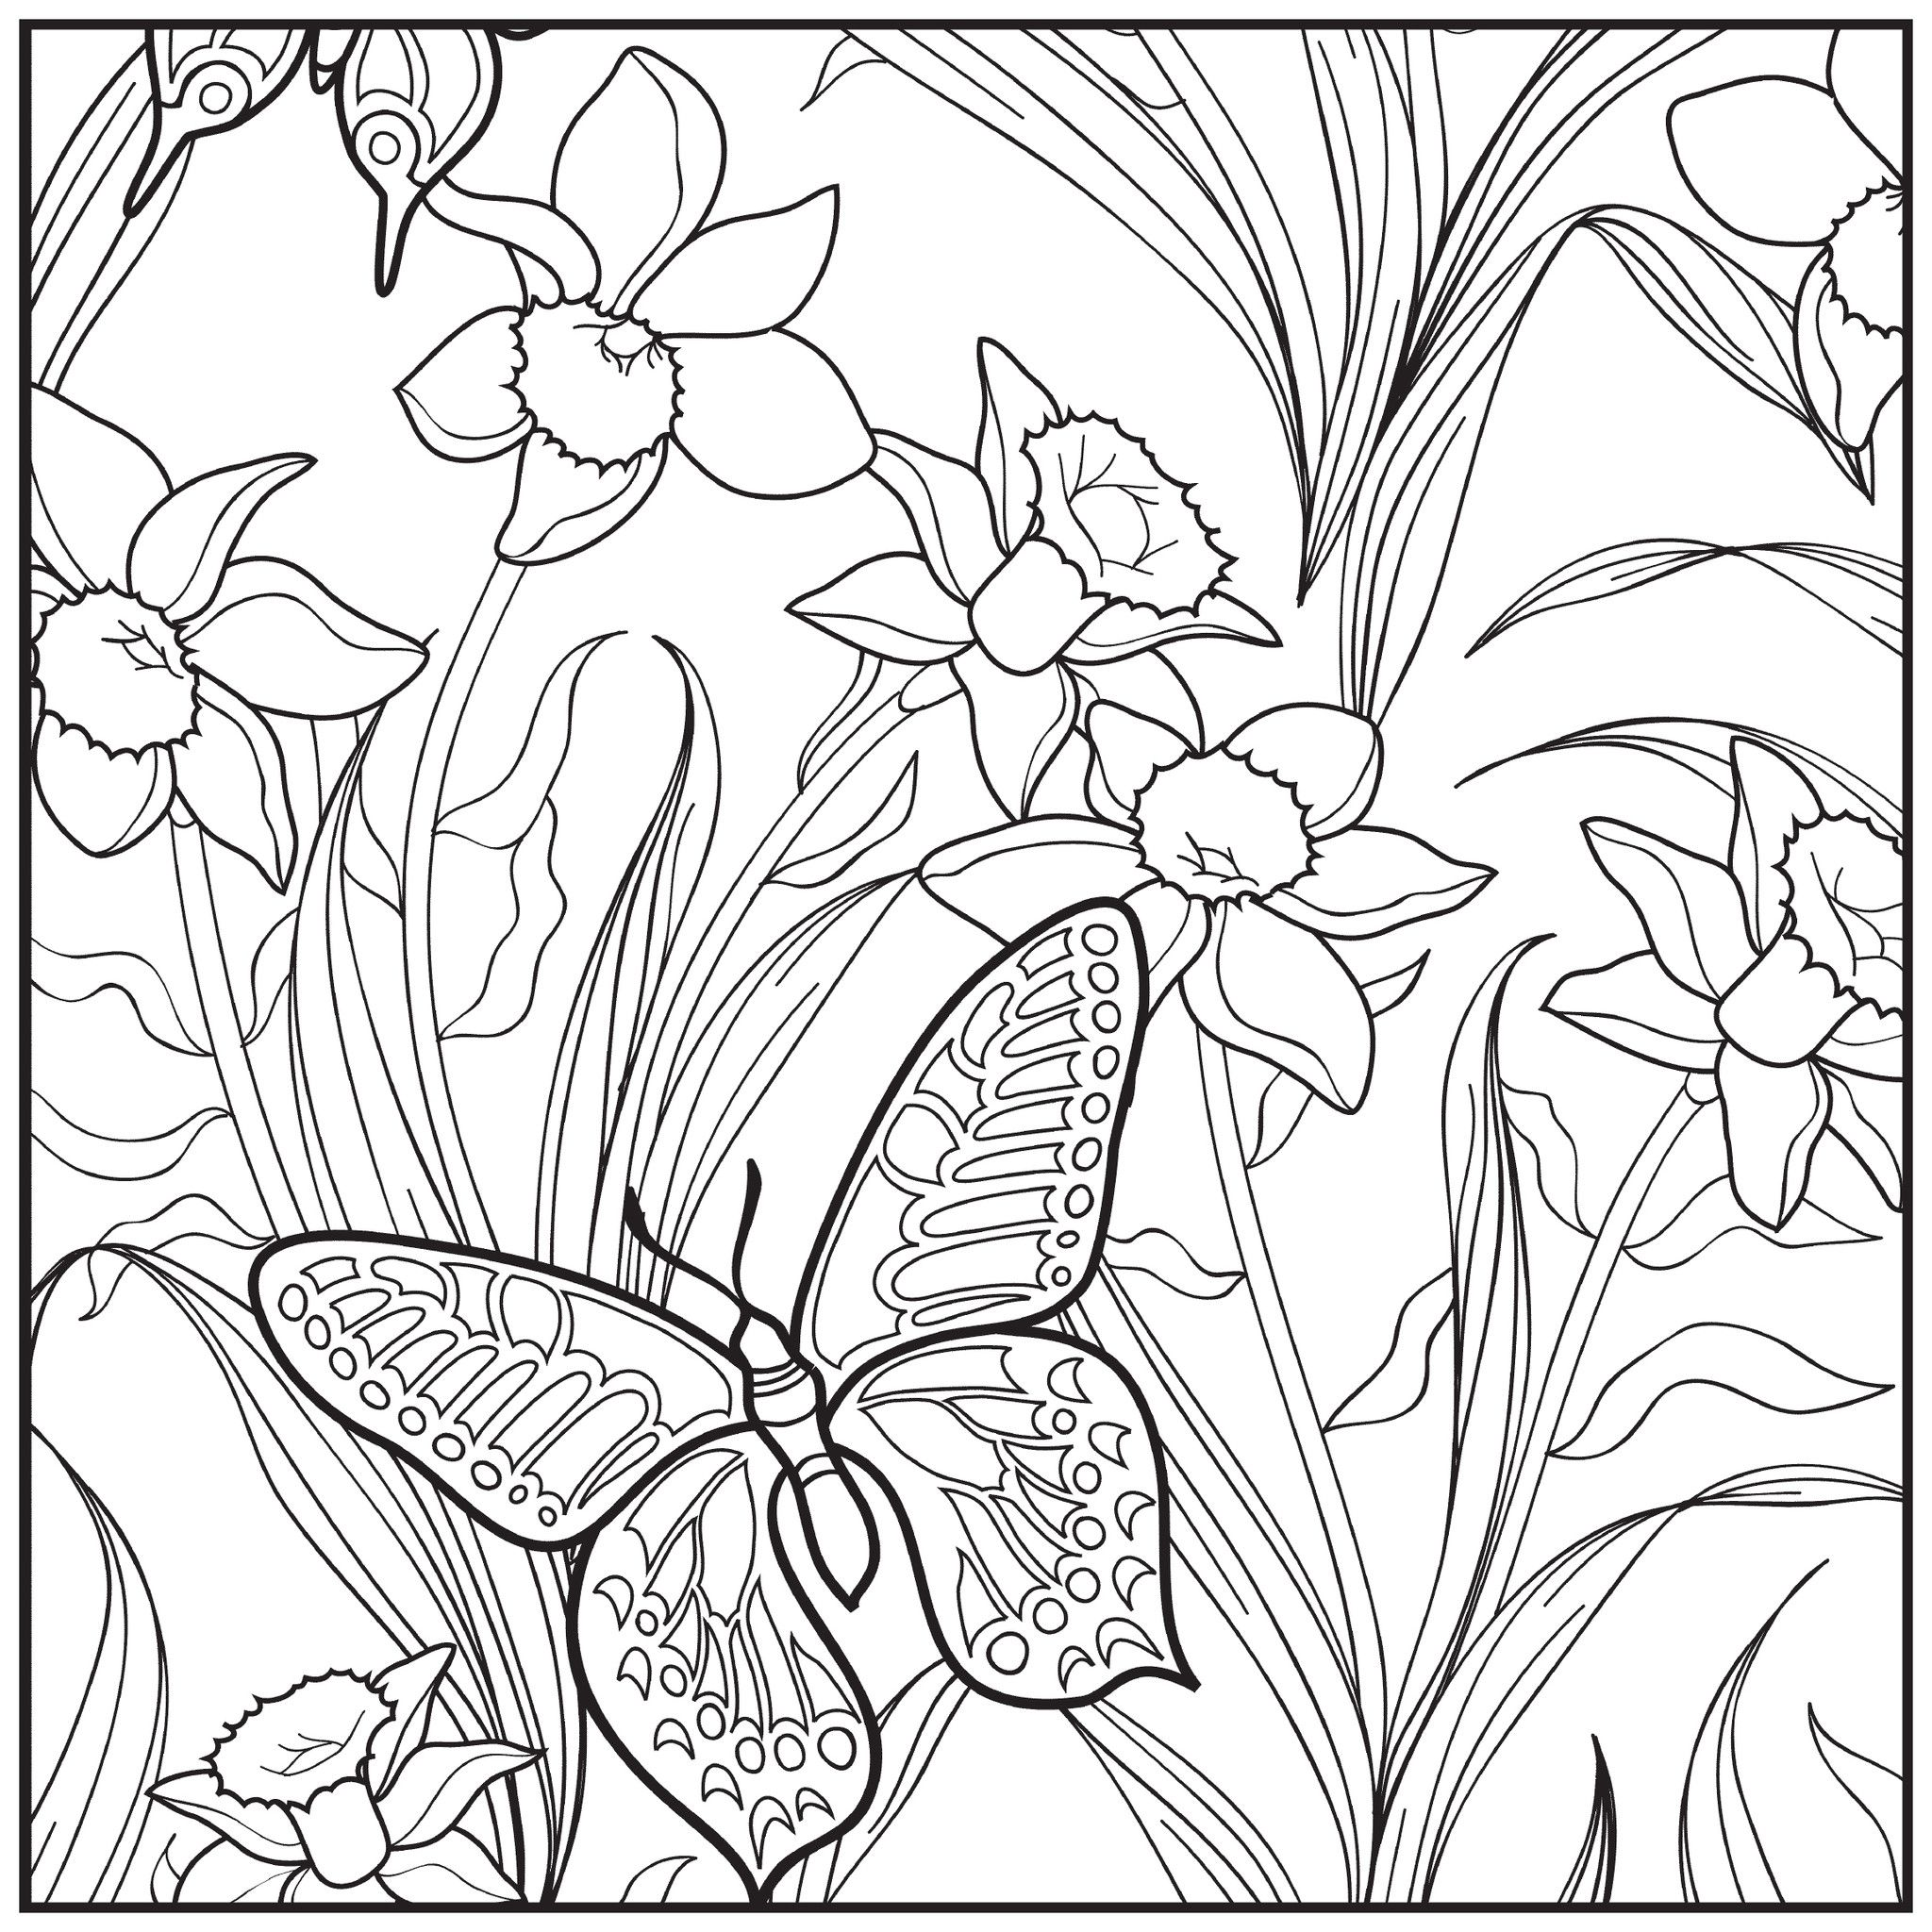 Colour book for adults - Color Your Way To Calm With The Botanical Garden Adult Coloring Book Each Book Has 48 Single Sided Flower And Garden Inspired Images And A Bonus Relaxation